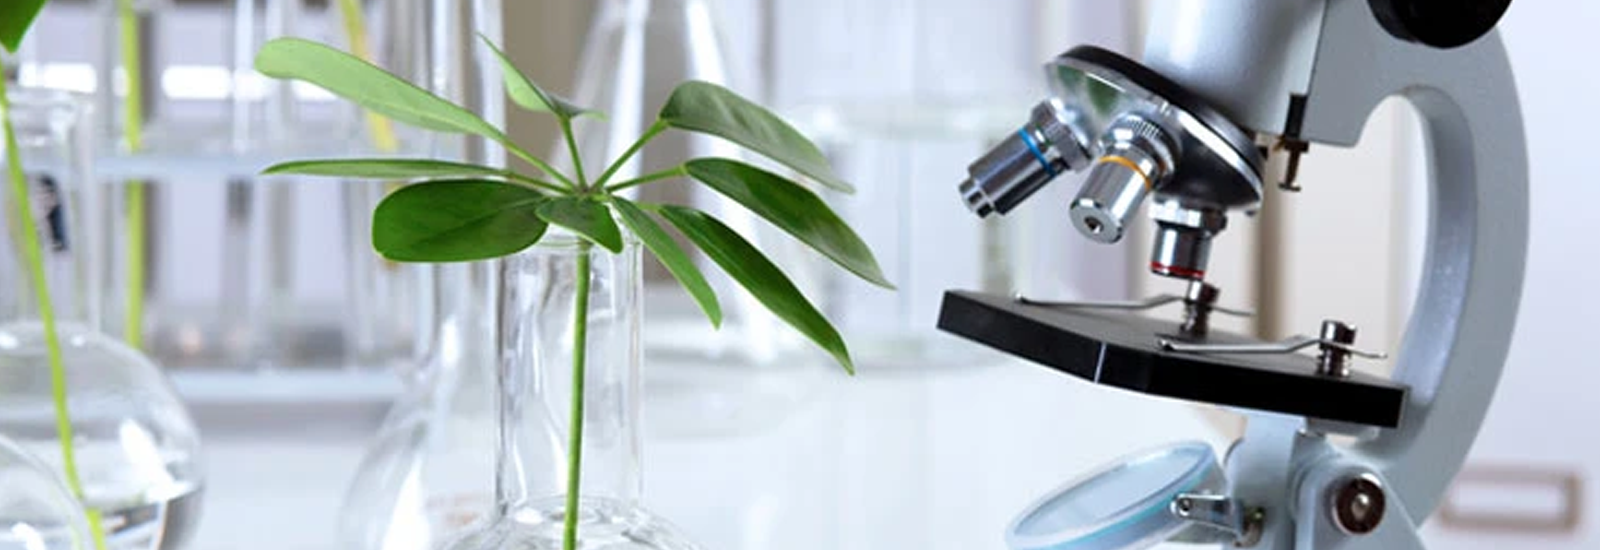 Microscope with herb - Formulating a Herbal Drug - The Himalaya Drug Company